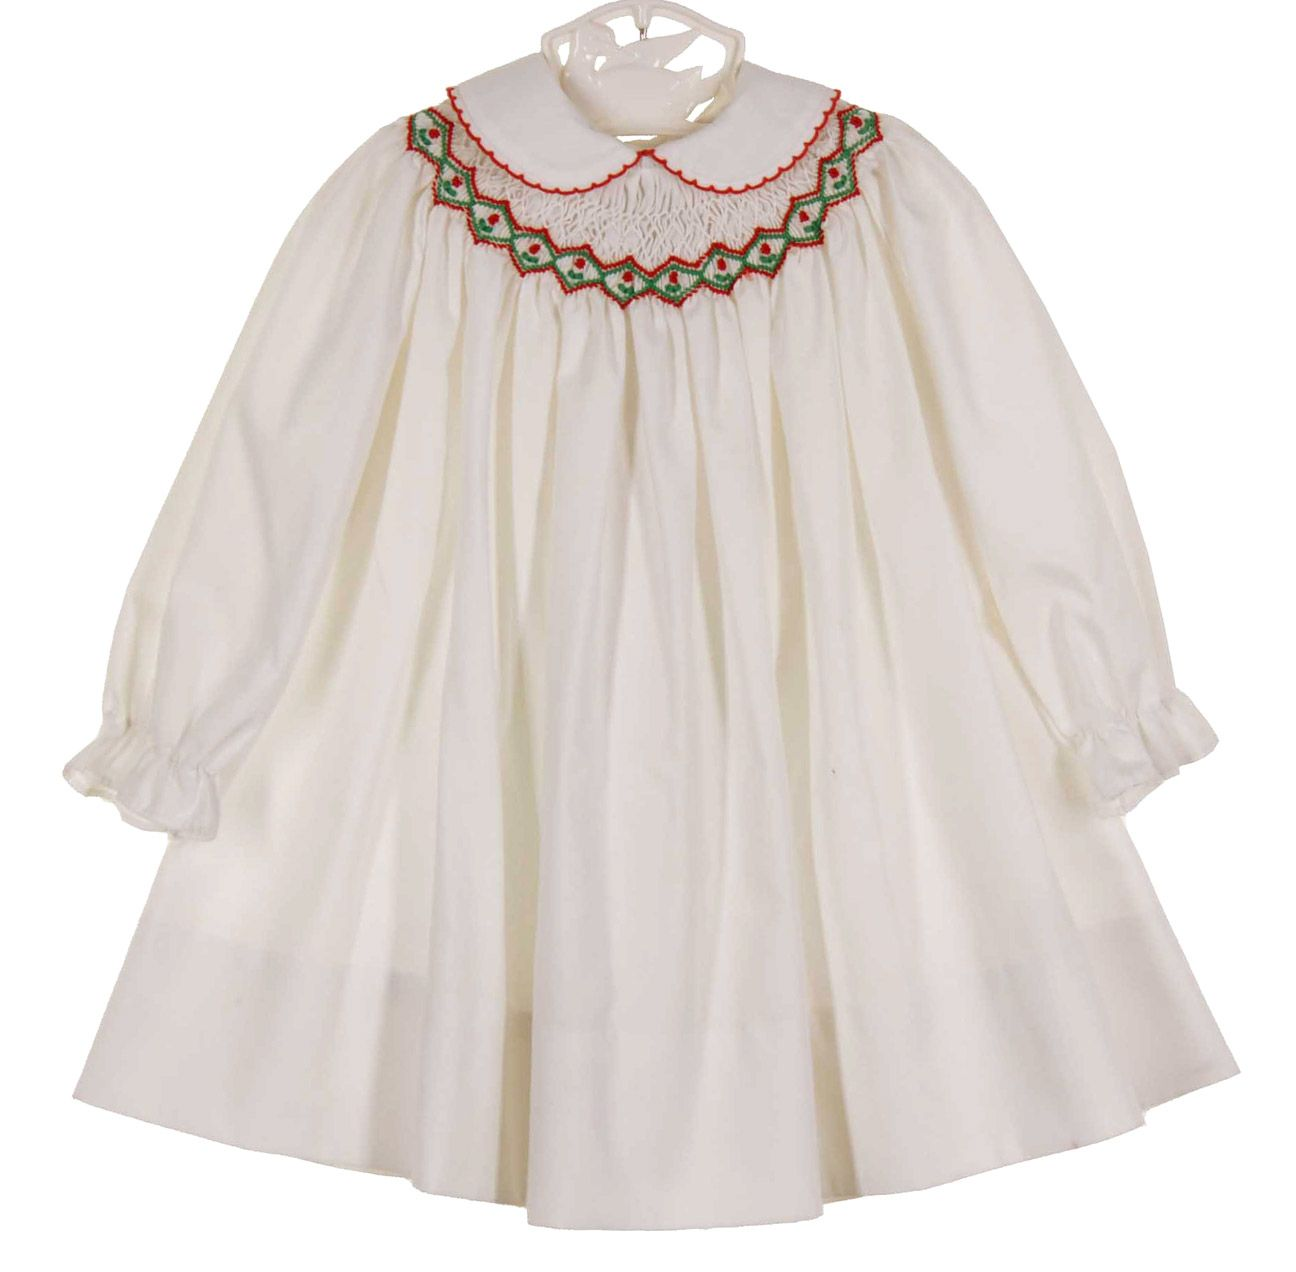 f55b41eb79fc NEW Polly Flinders White Smocked Dress with Holiday Embroidery and Lace  Trim $75.00 | Polly Flinders! | Baby Dress, Baby girl dresses, Smocking